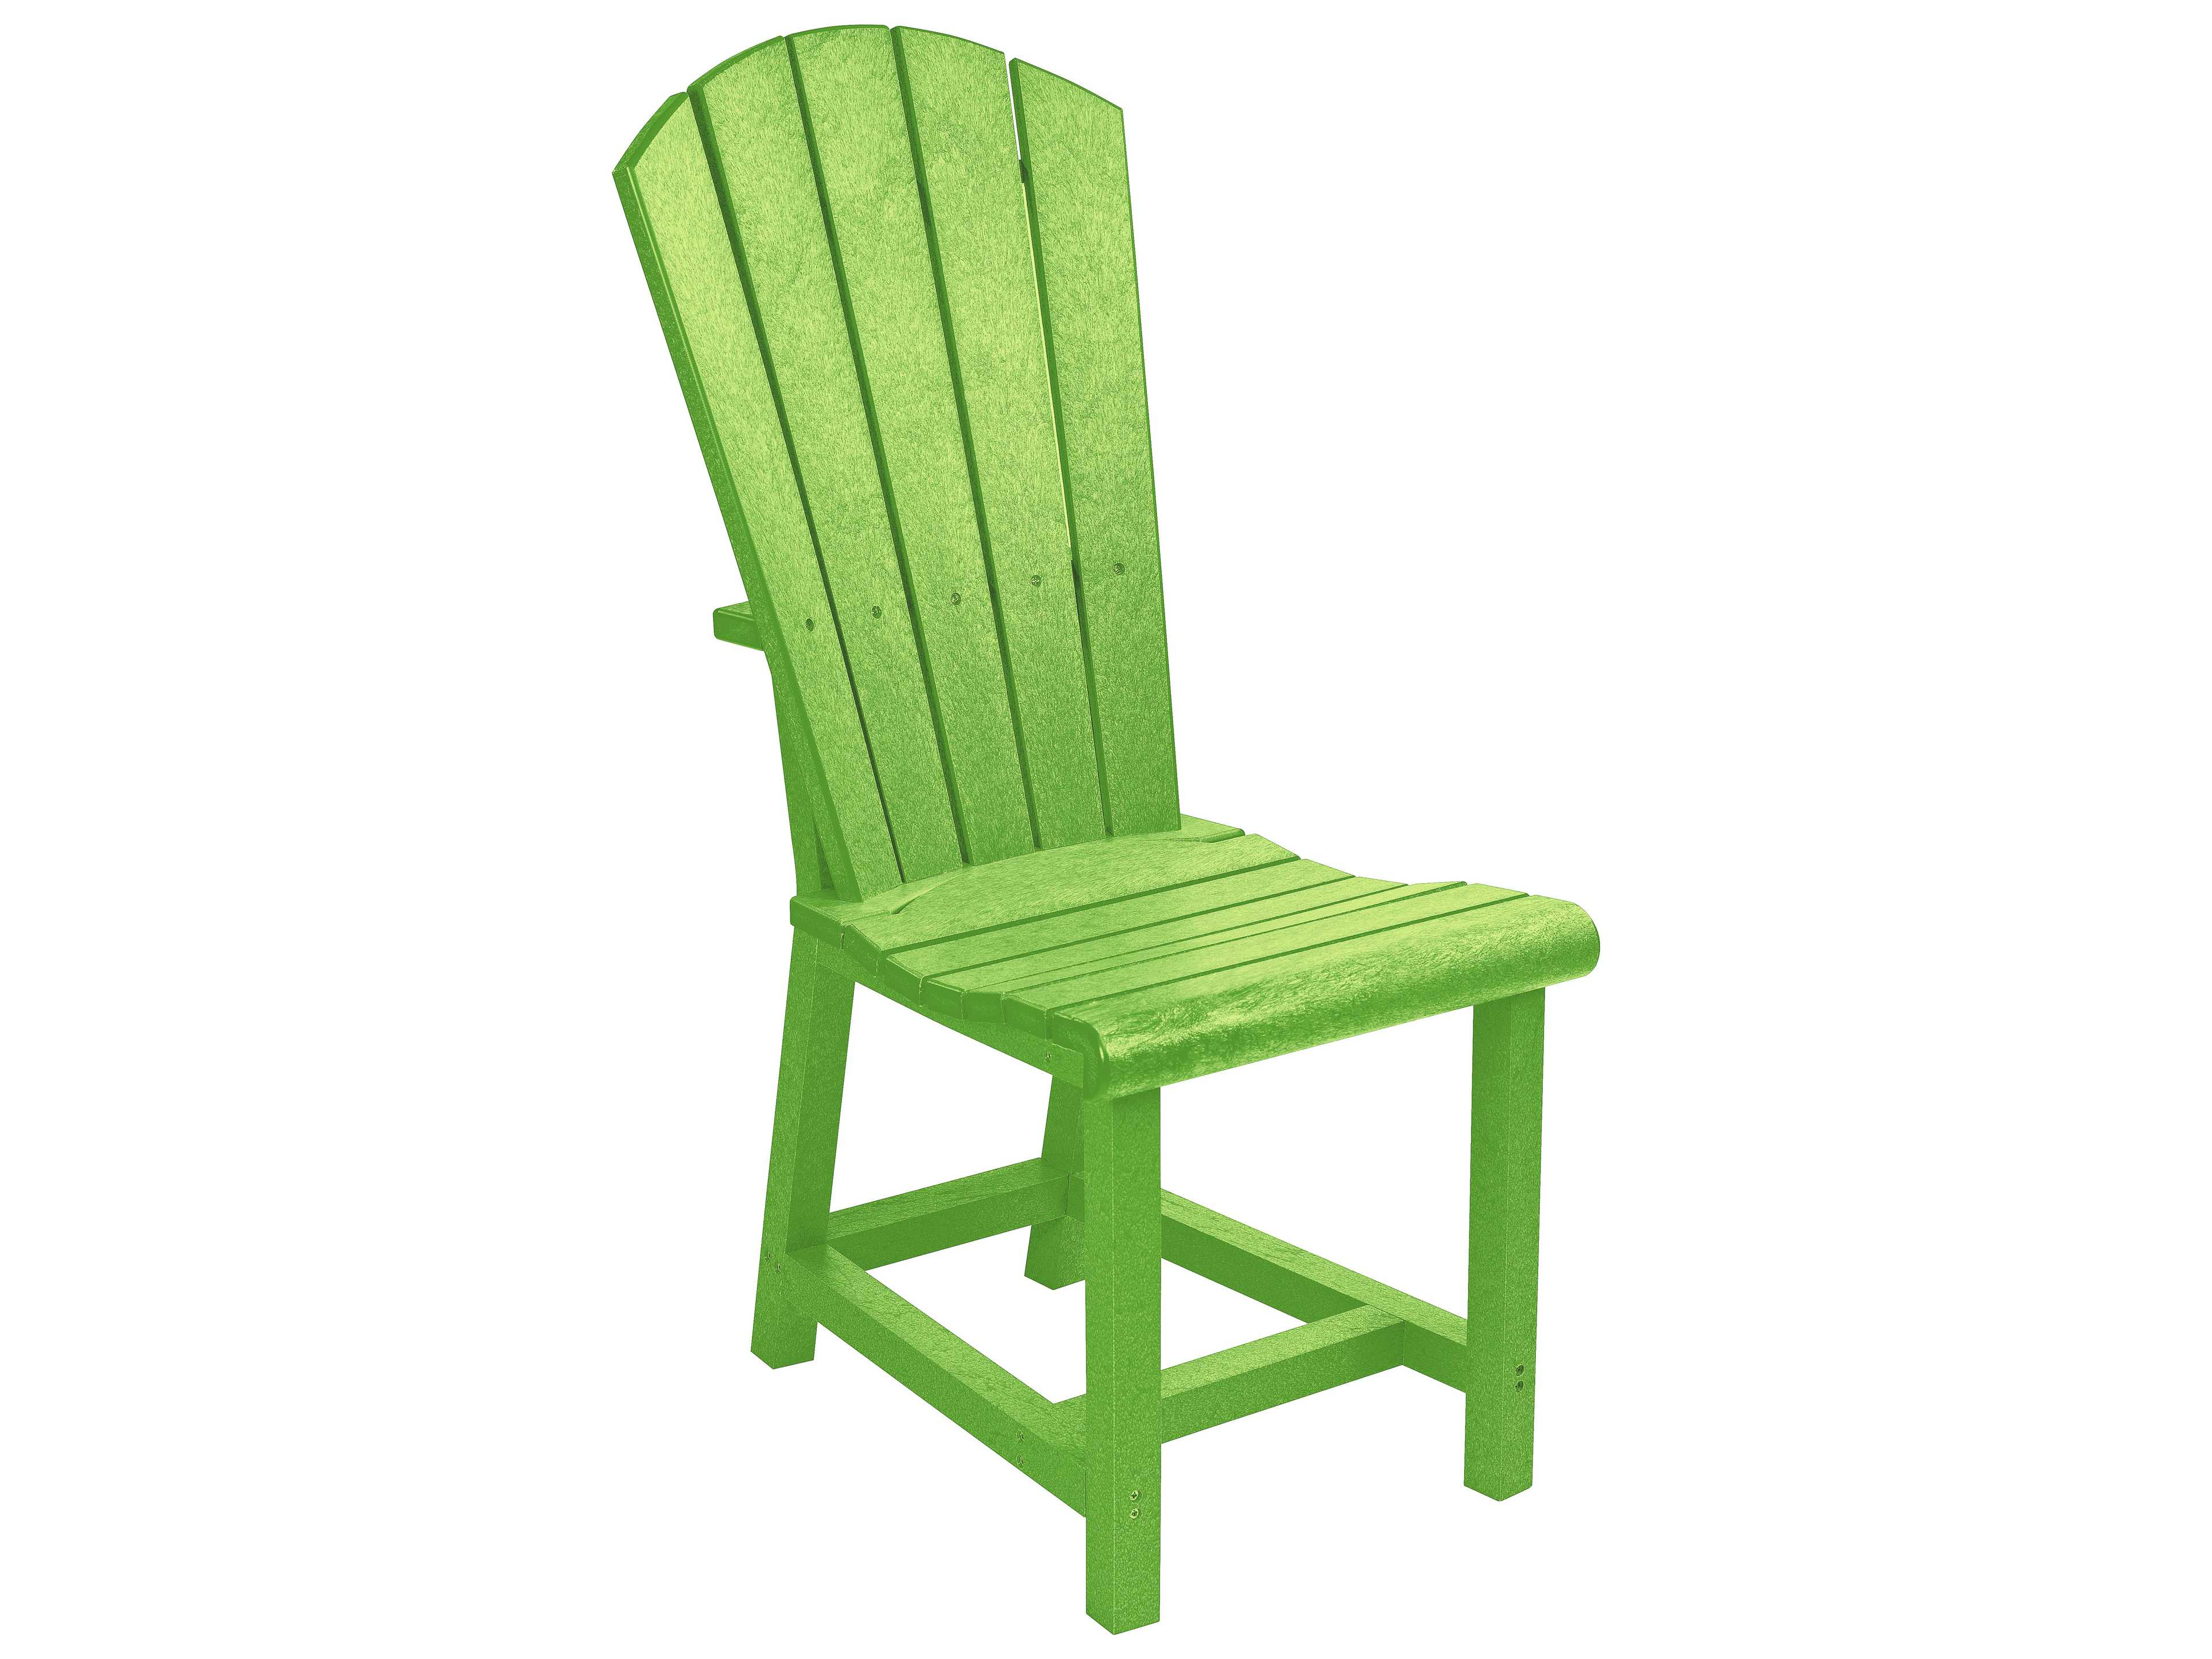 c r plastic generation recycled plastic addy adirondack side chair crc11. Black Bedroom Furniture Sets. Home Design Ideas